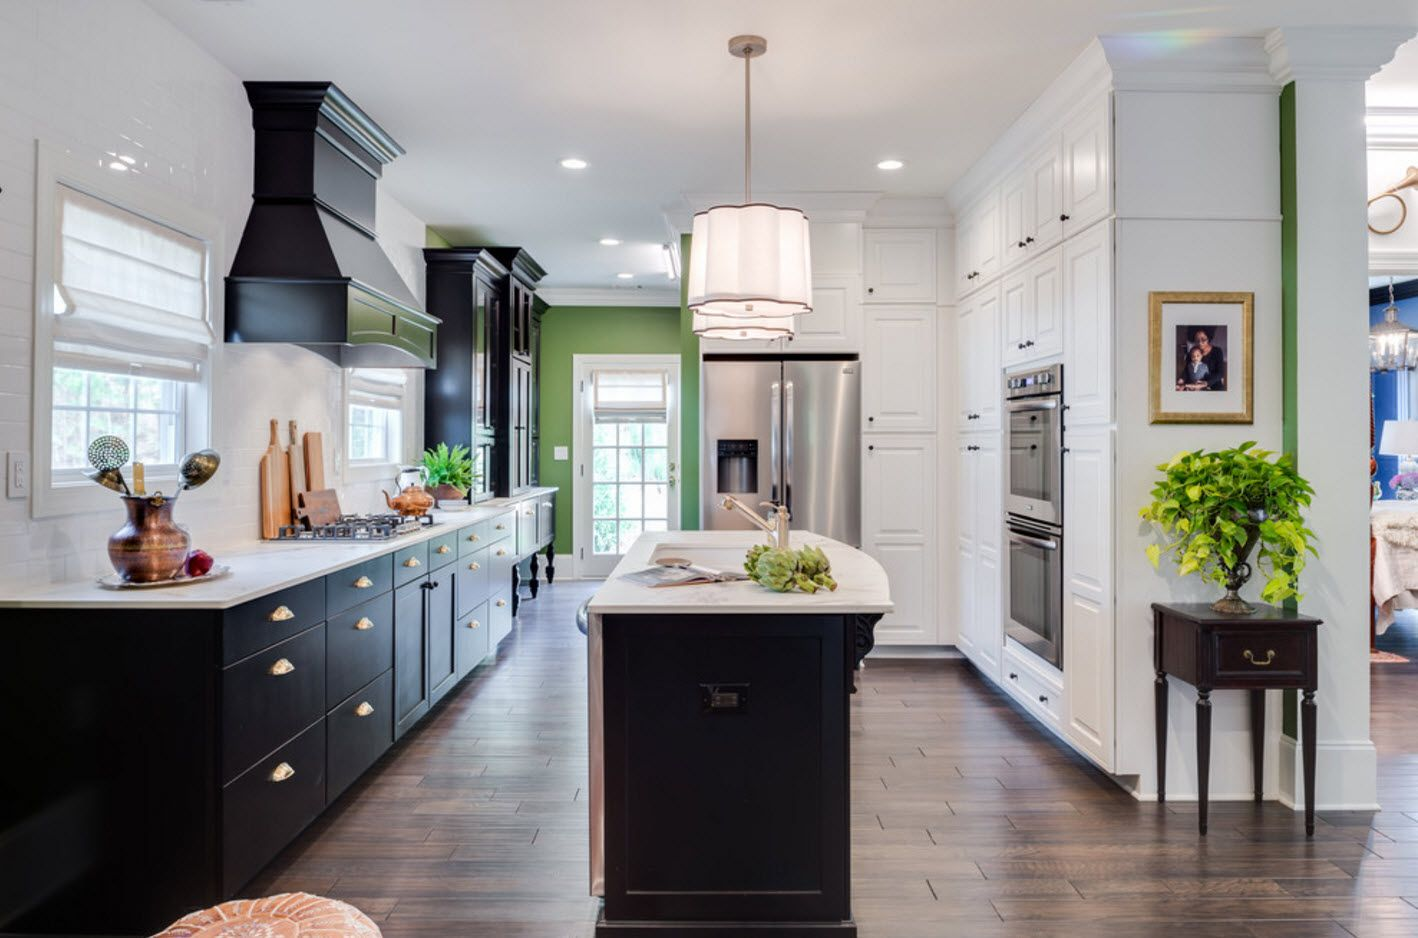 Nice elongated kitchen design with thin kitchen island for cooking